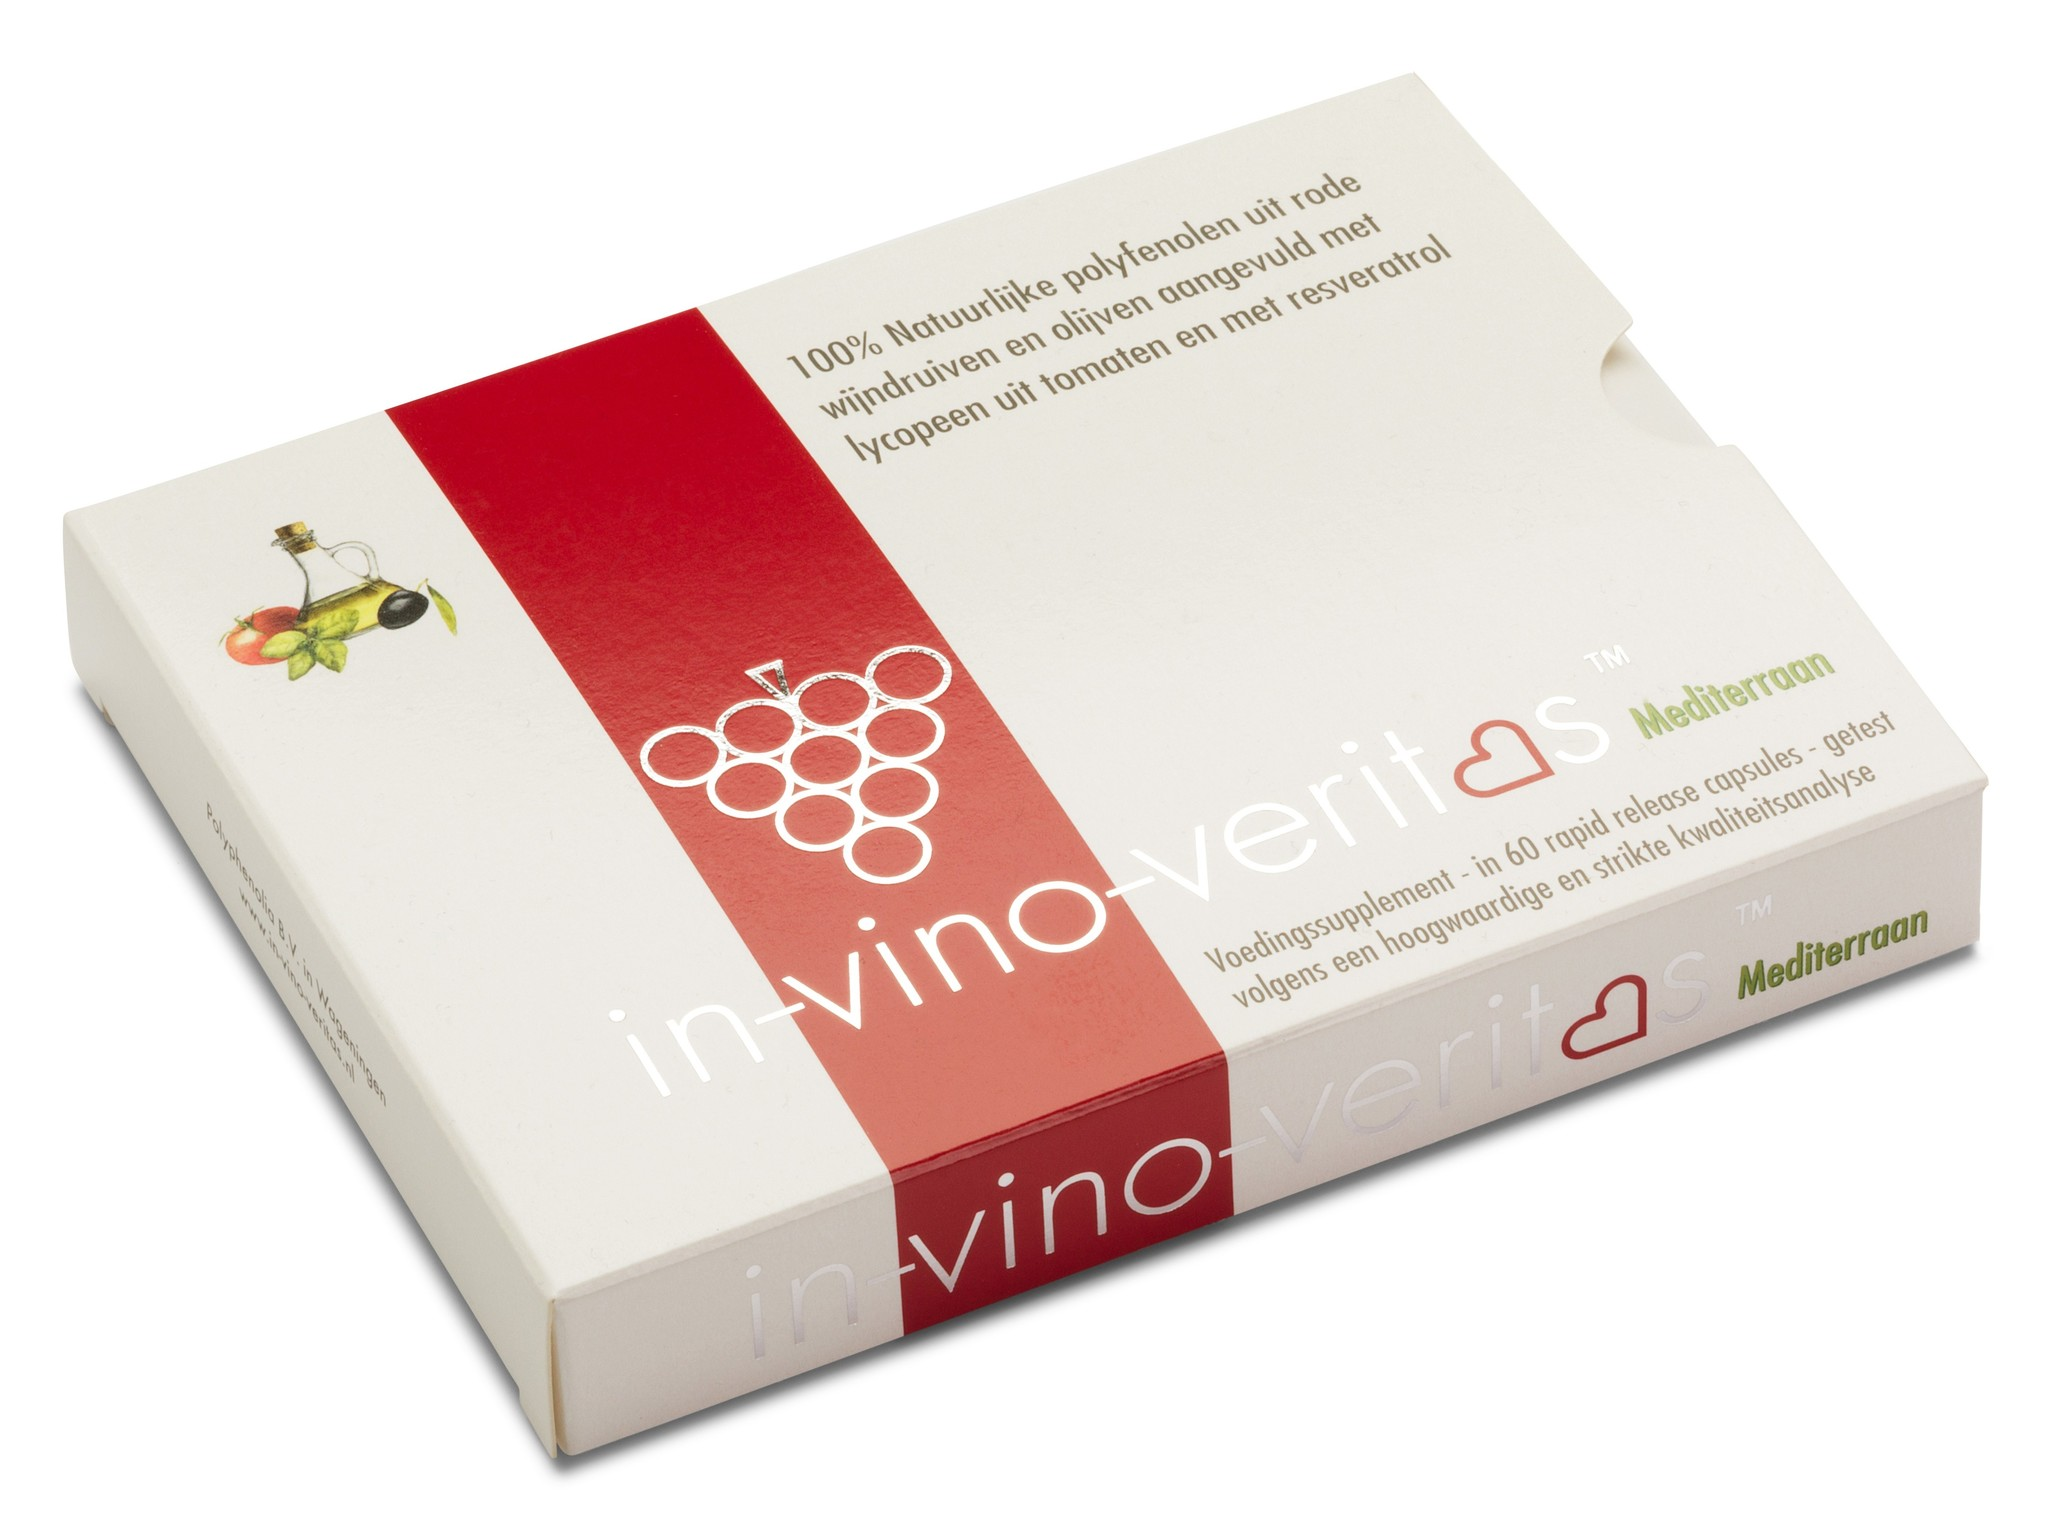 In-Vino-Veritas™ Mediterranean 6 Months Offer (5% Discount + Free Shipping in NL)